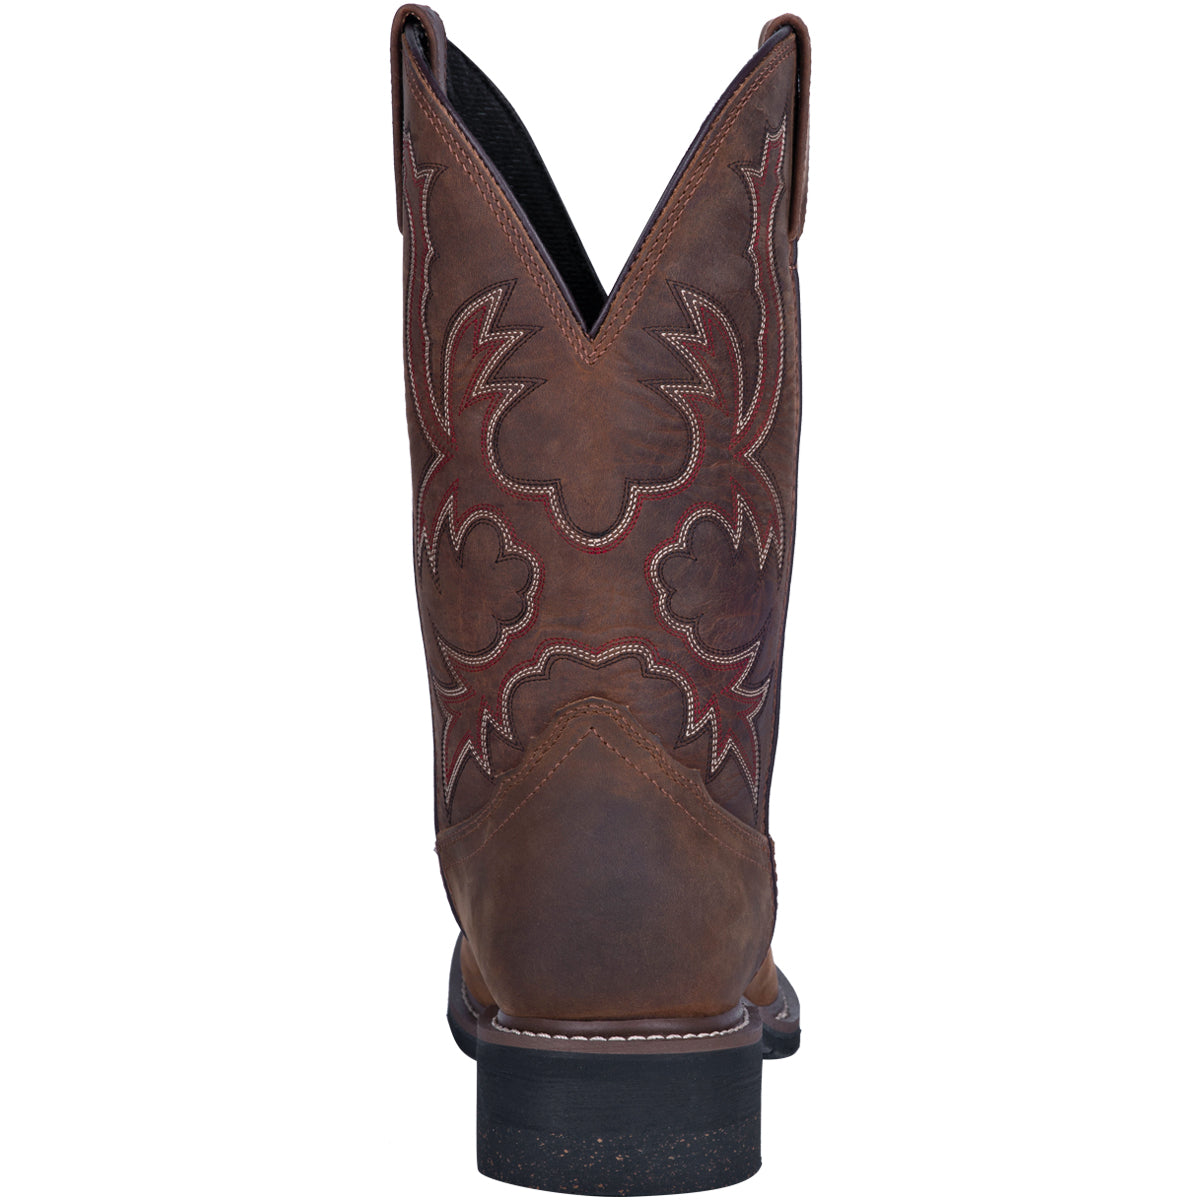 NOGALES WATERPROOF LEATHER BOOT 15521806417962